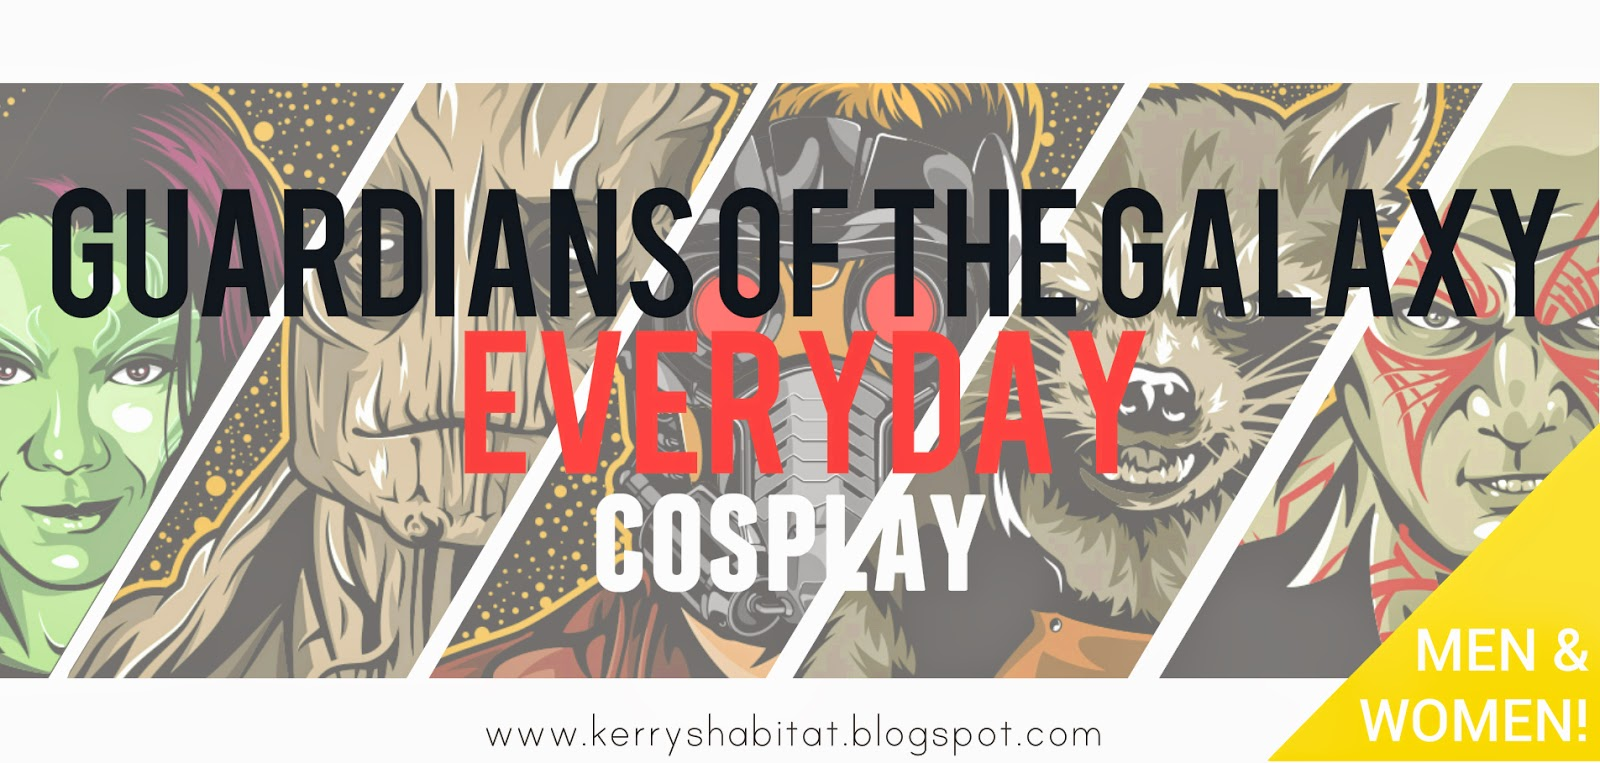 http://kerryshabitat.blogspot.co.uk/2014/08/gaurdians-of-galaxy-everyday-cosplay-men.html